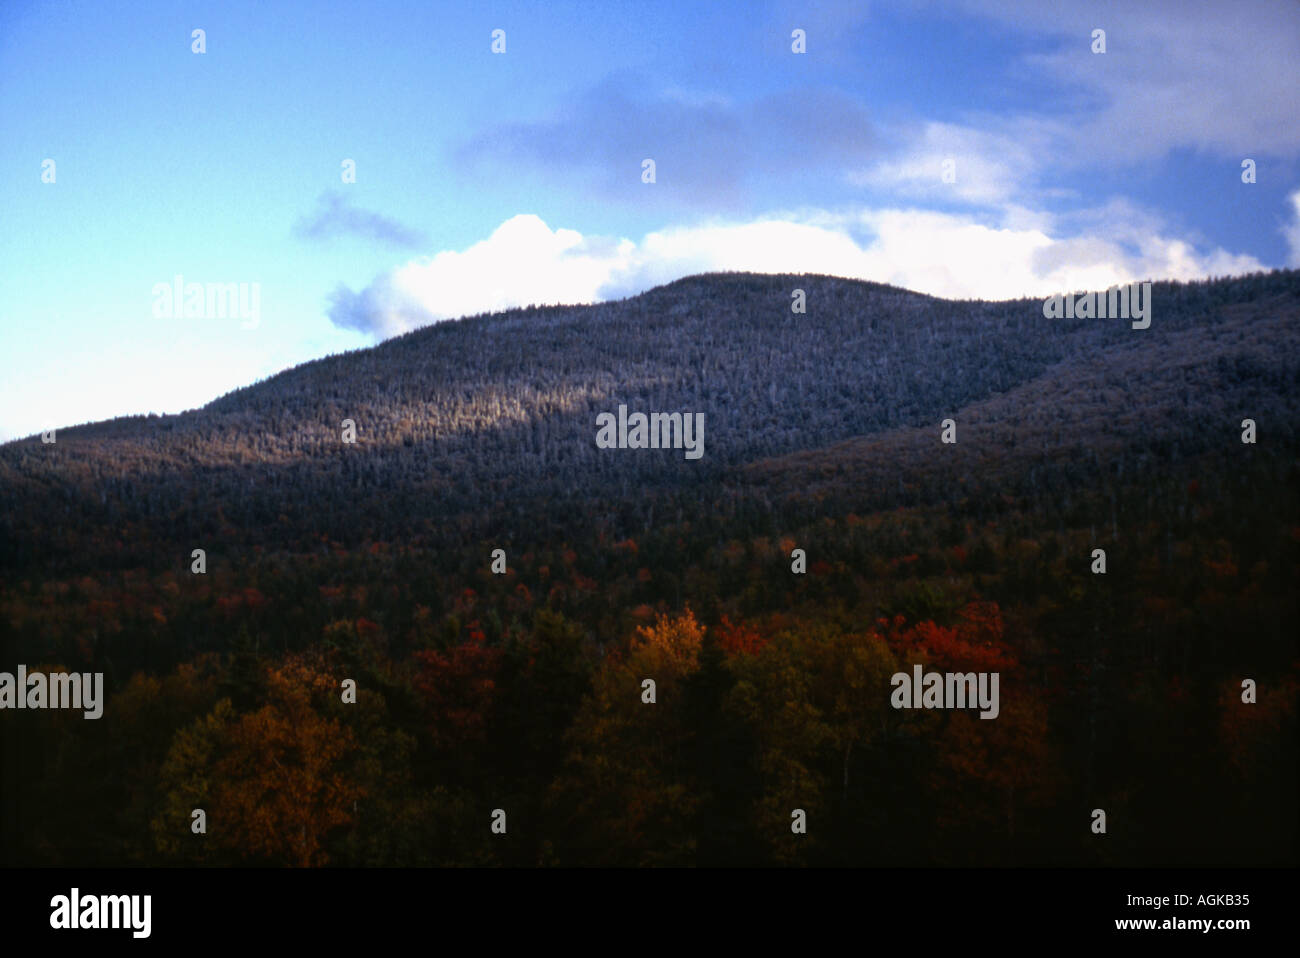 First Frost on Mountain Top - Stock Image